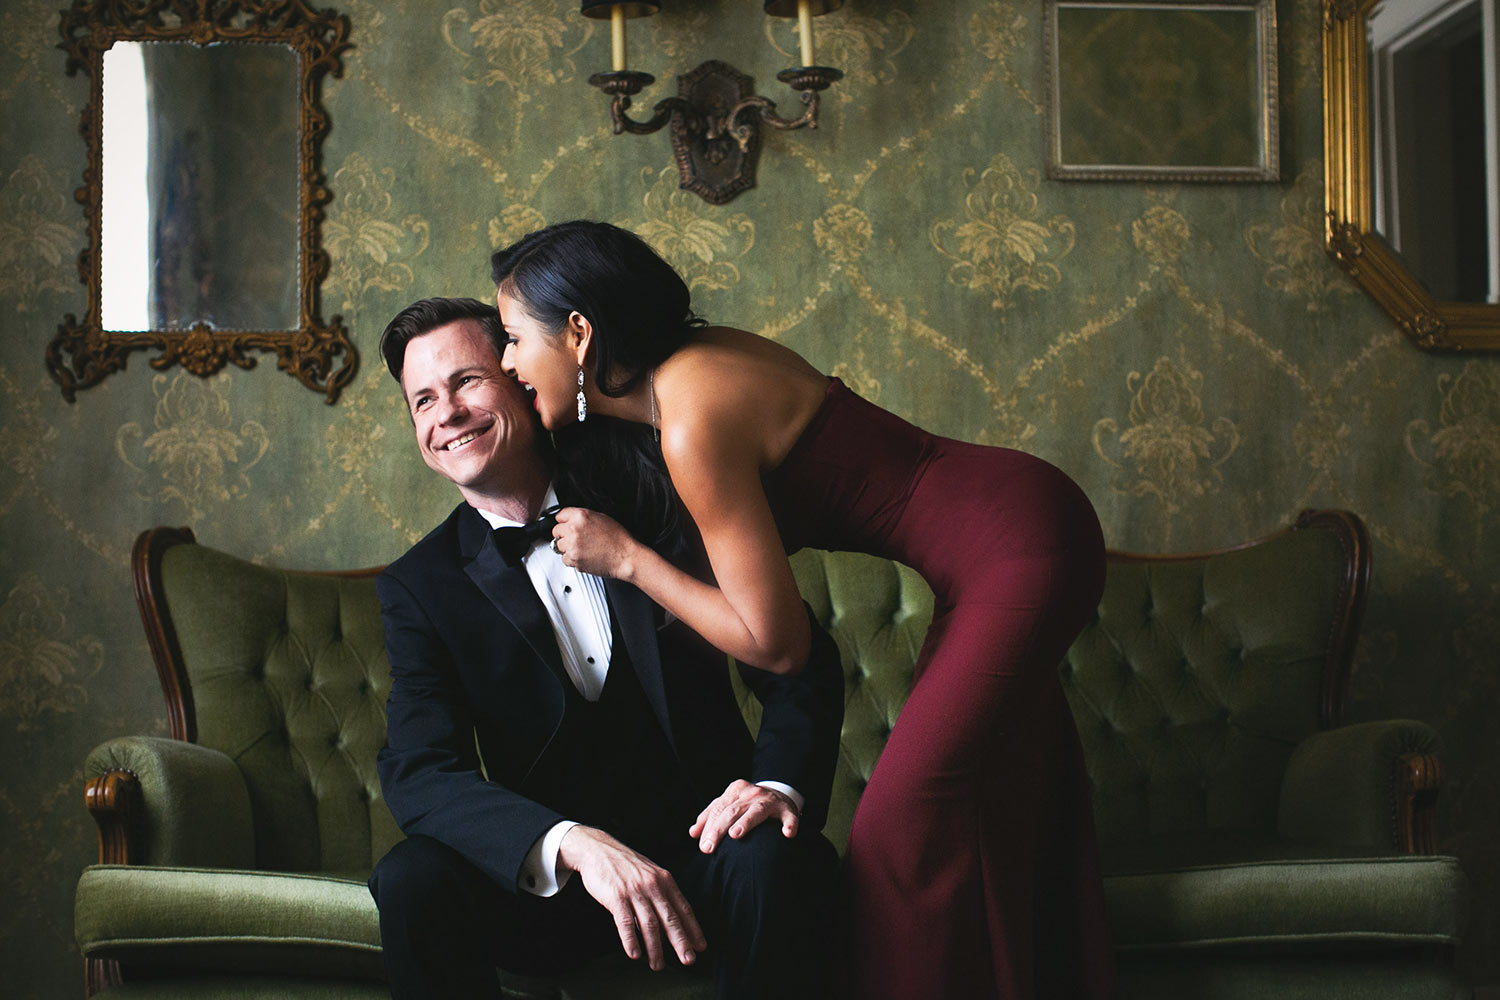 Sexy engagement photo at the Ebell of Long Beach of bride grabbing groom's tie